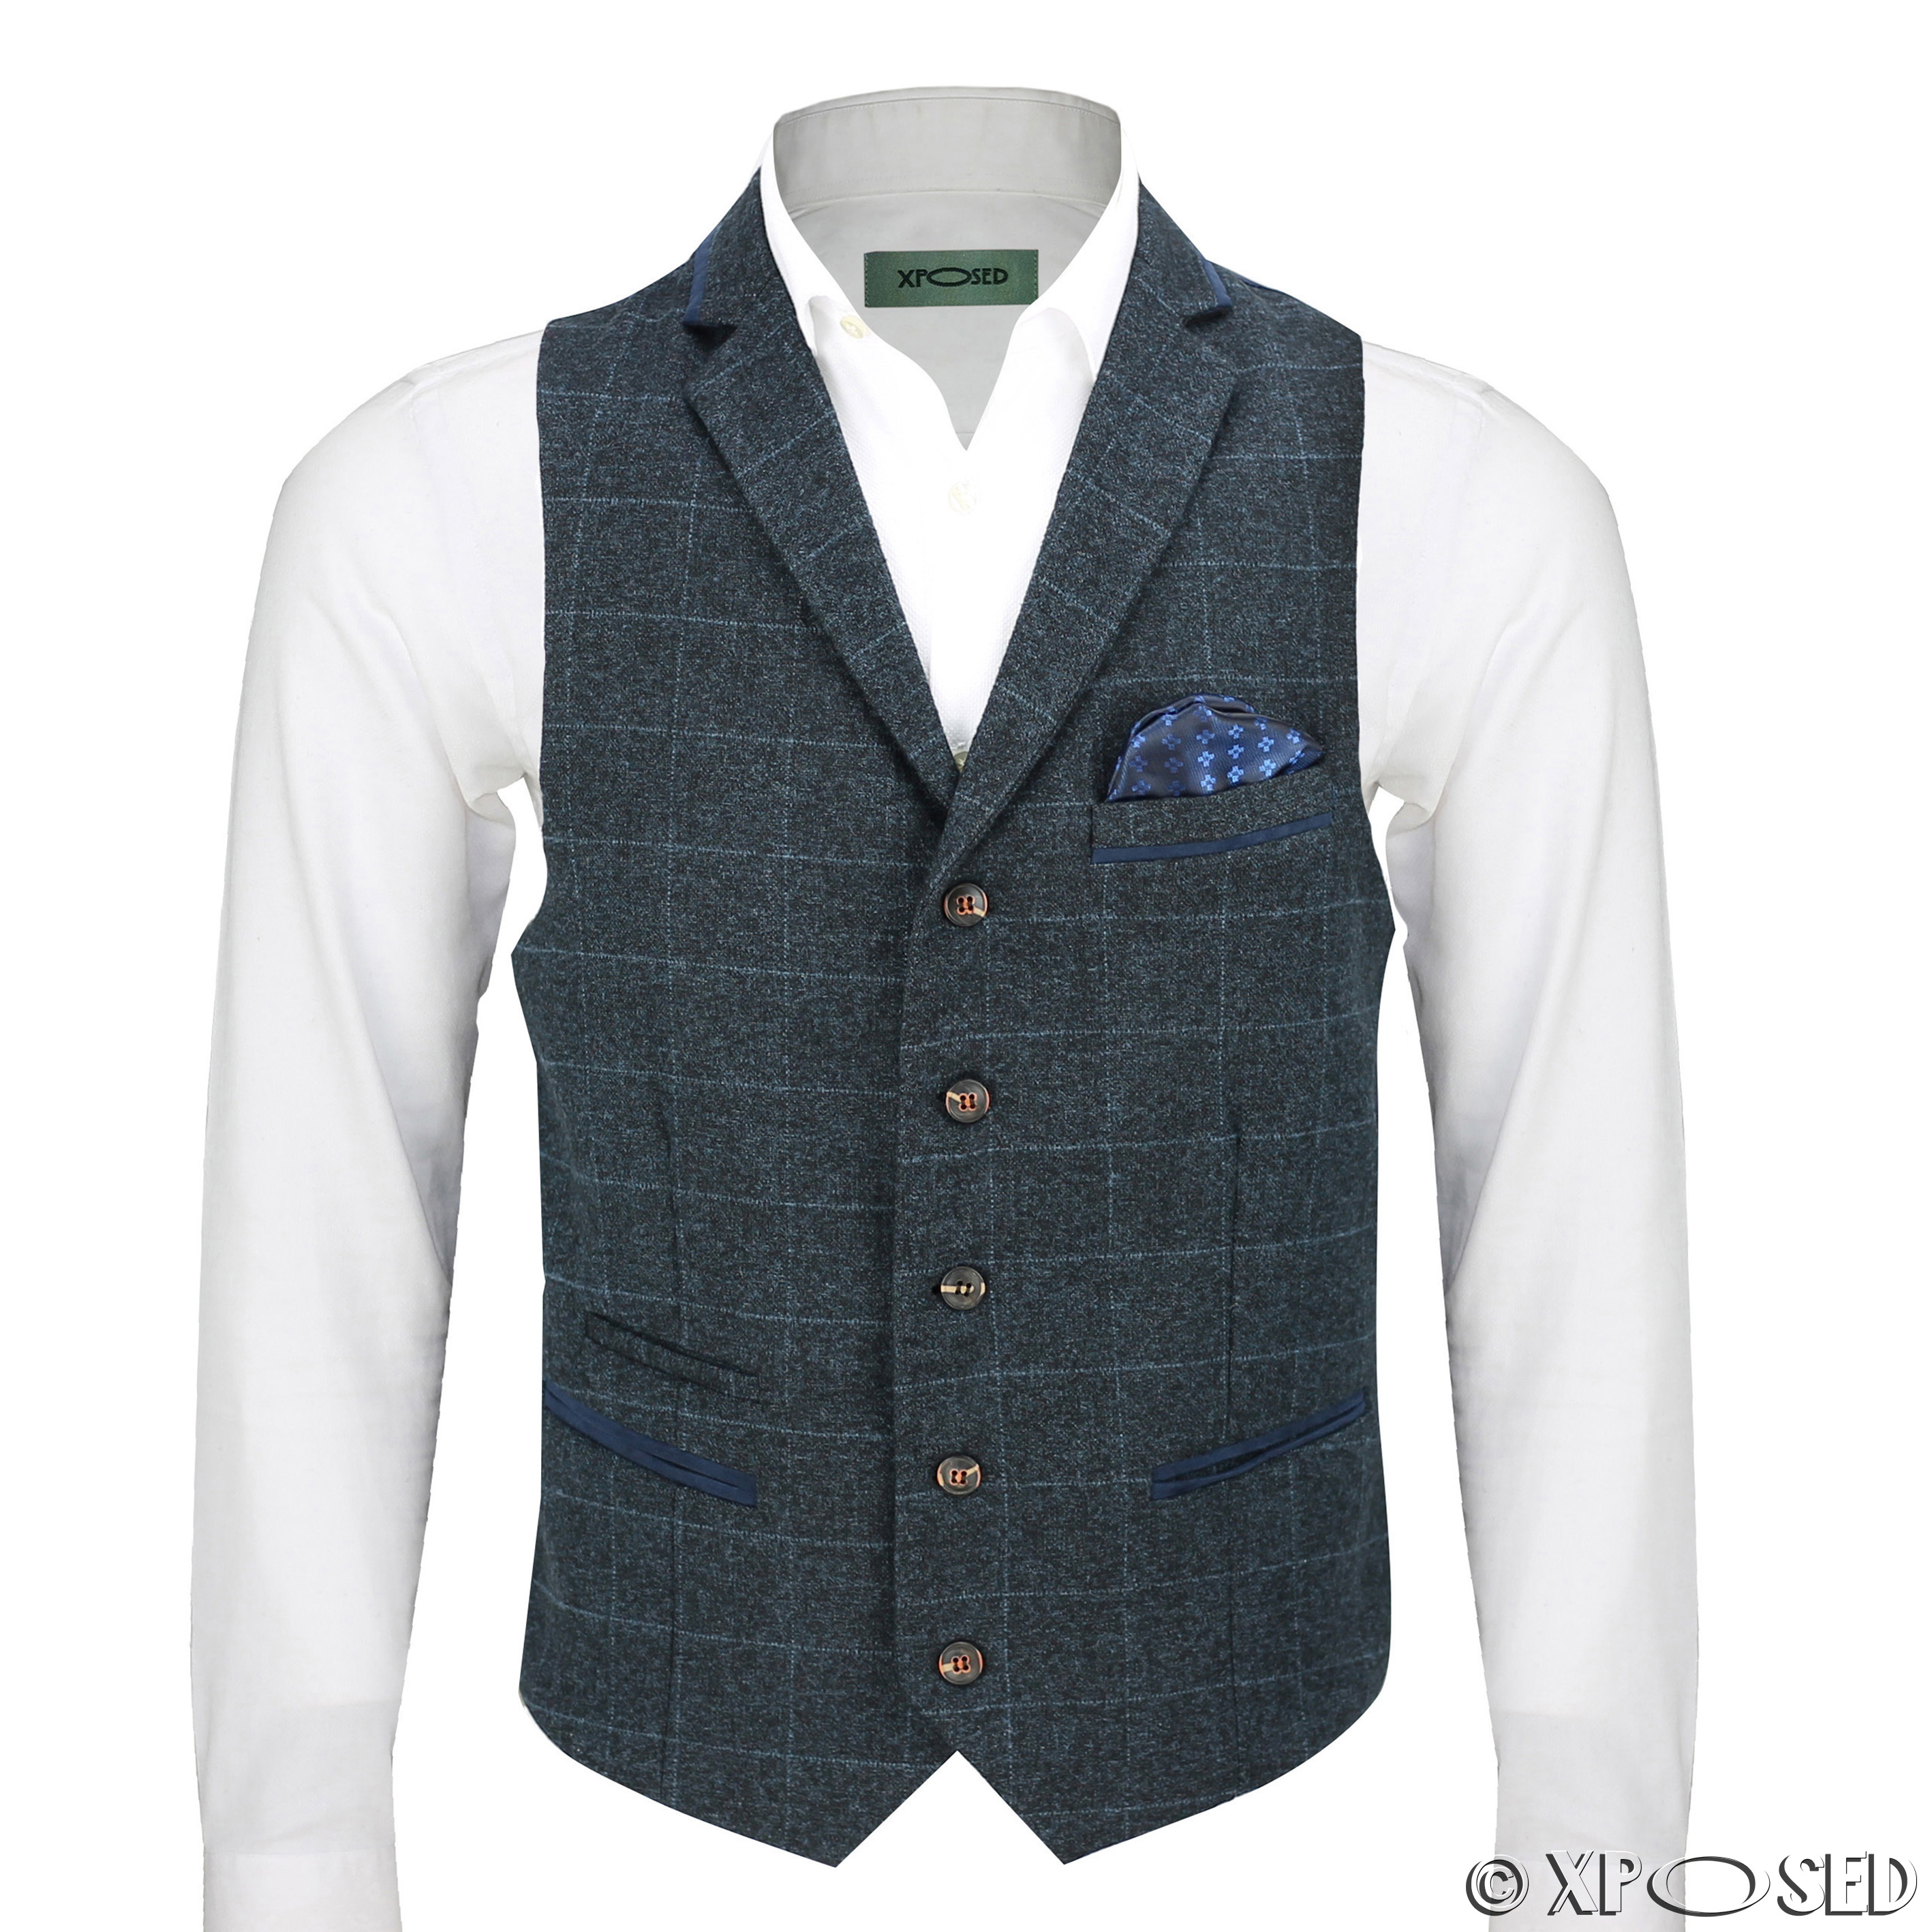 A waistcoat has a full vertical opening in the front, which fastens with buttons or snaps. Both single-breasted and double-breasted waistcoats exist, regardless of the formality of dress, but single-breasted ones are more common. In a three piece suit, the cloth used matches the jacket and trousers.